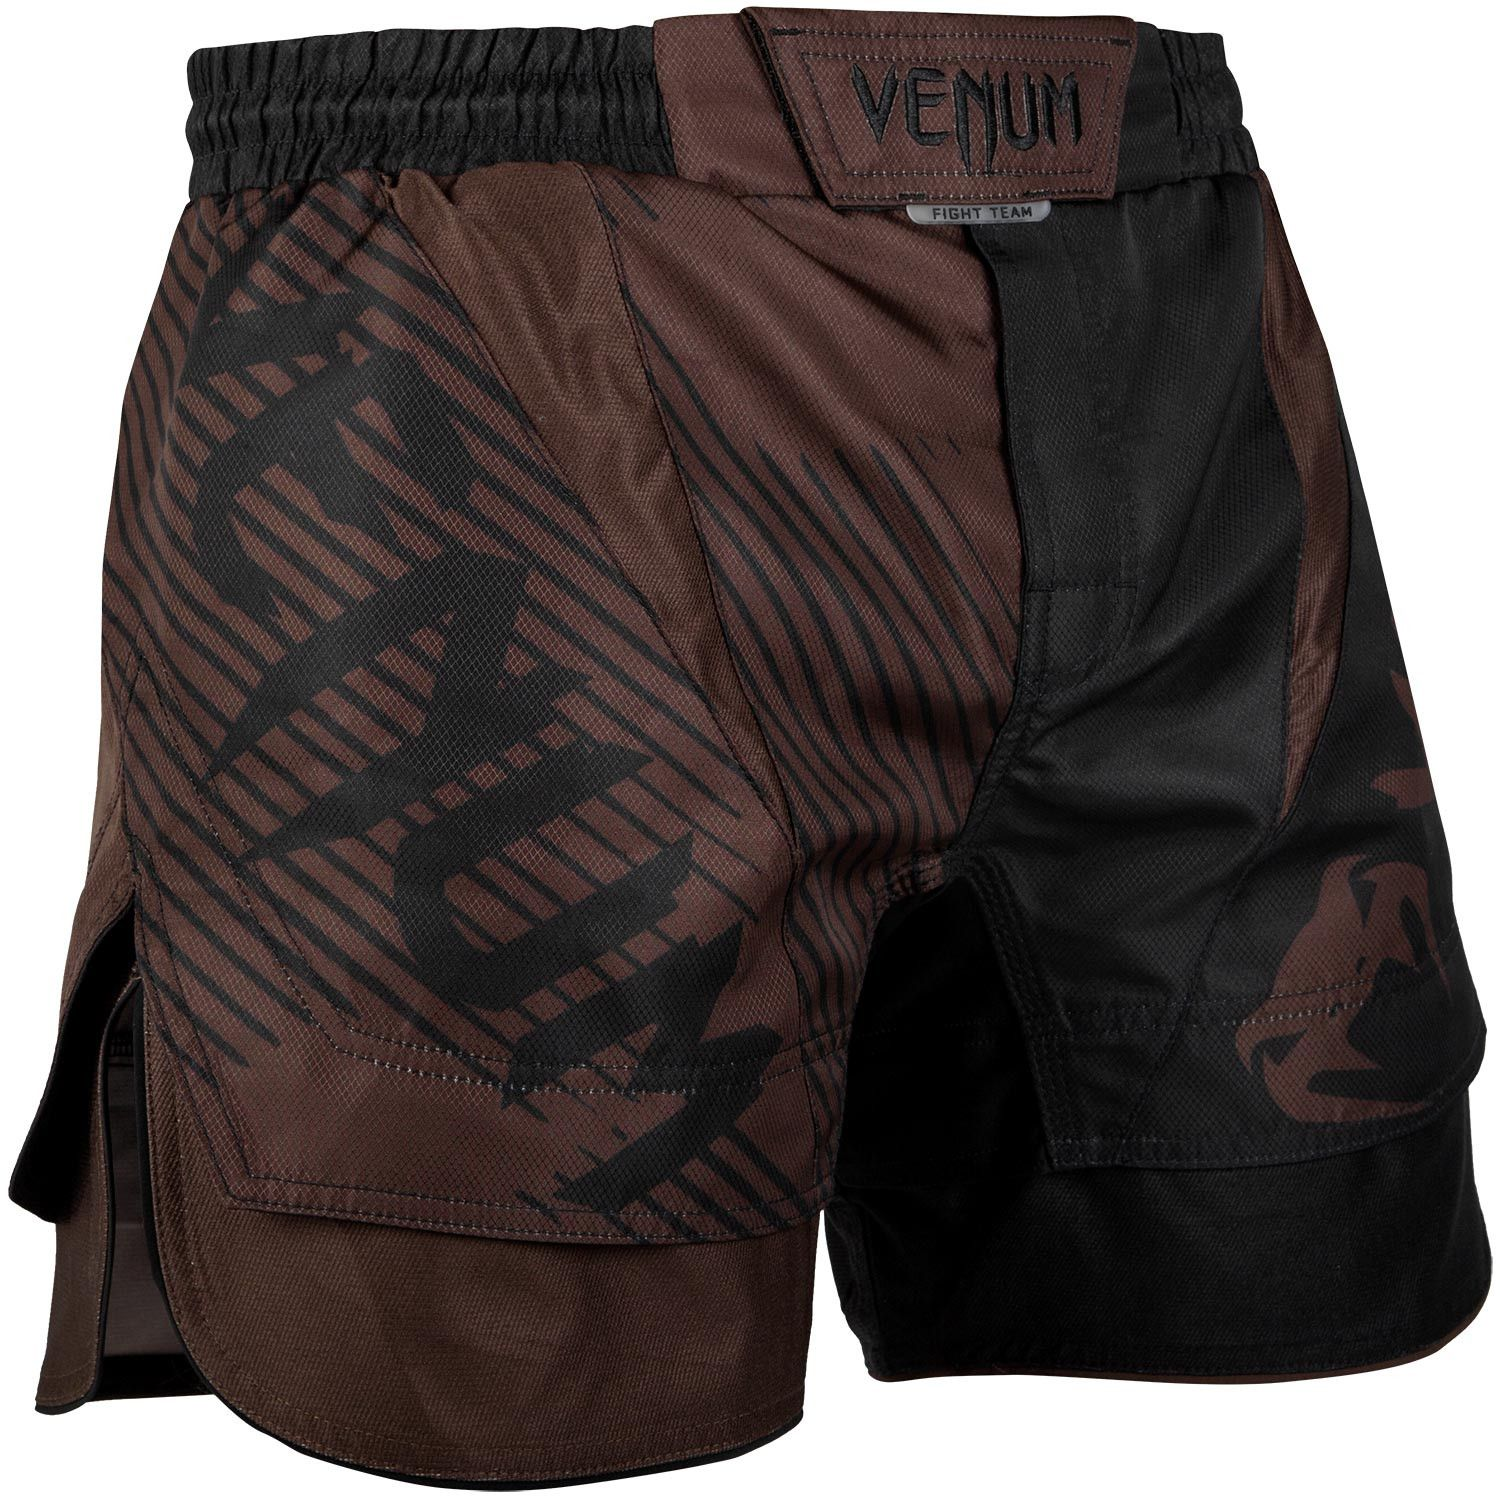 Venum Nogi 2.0 Fightshorts (Black/Brown)